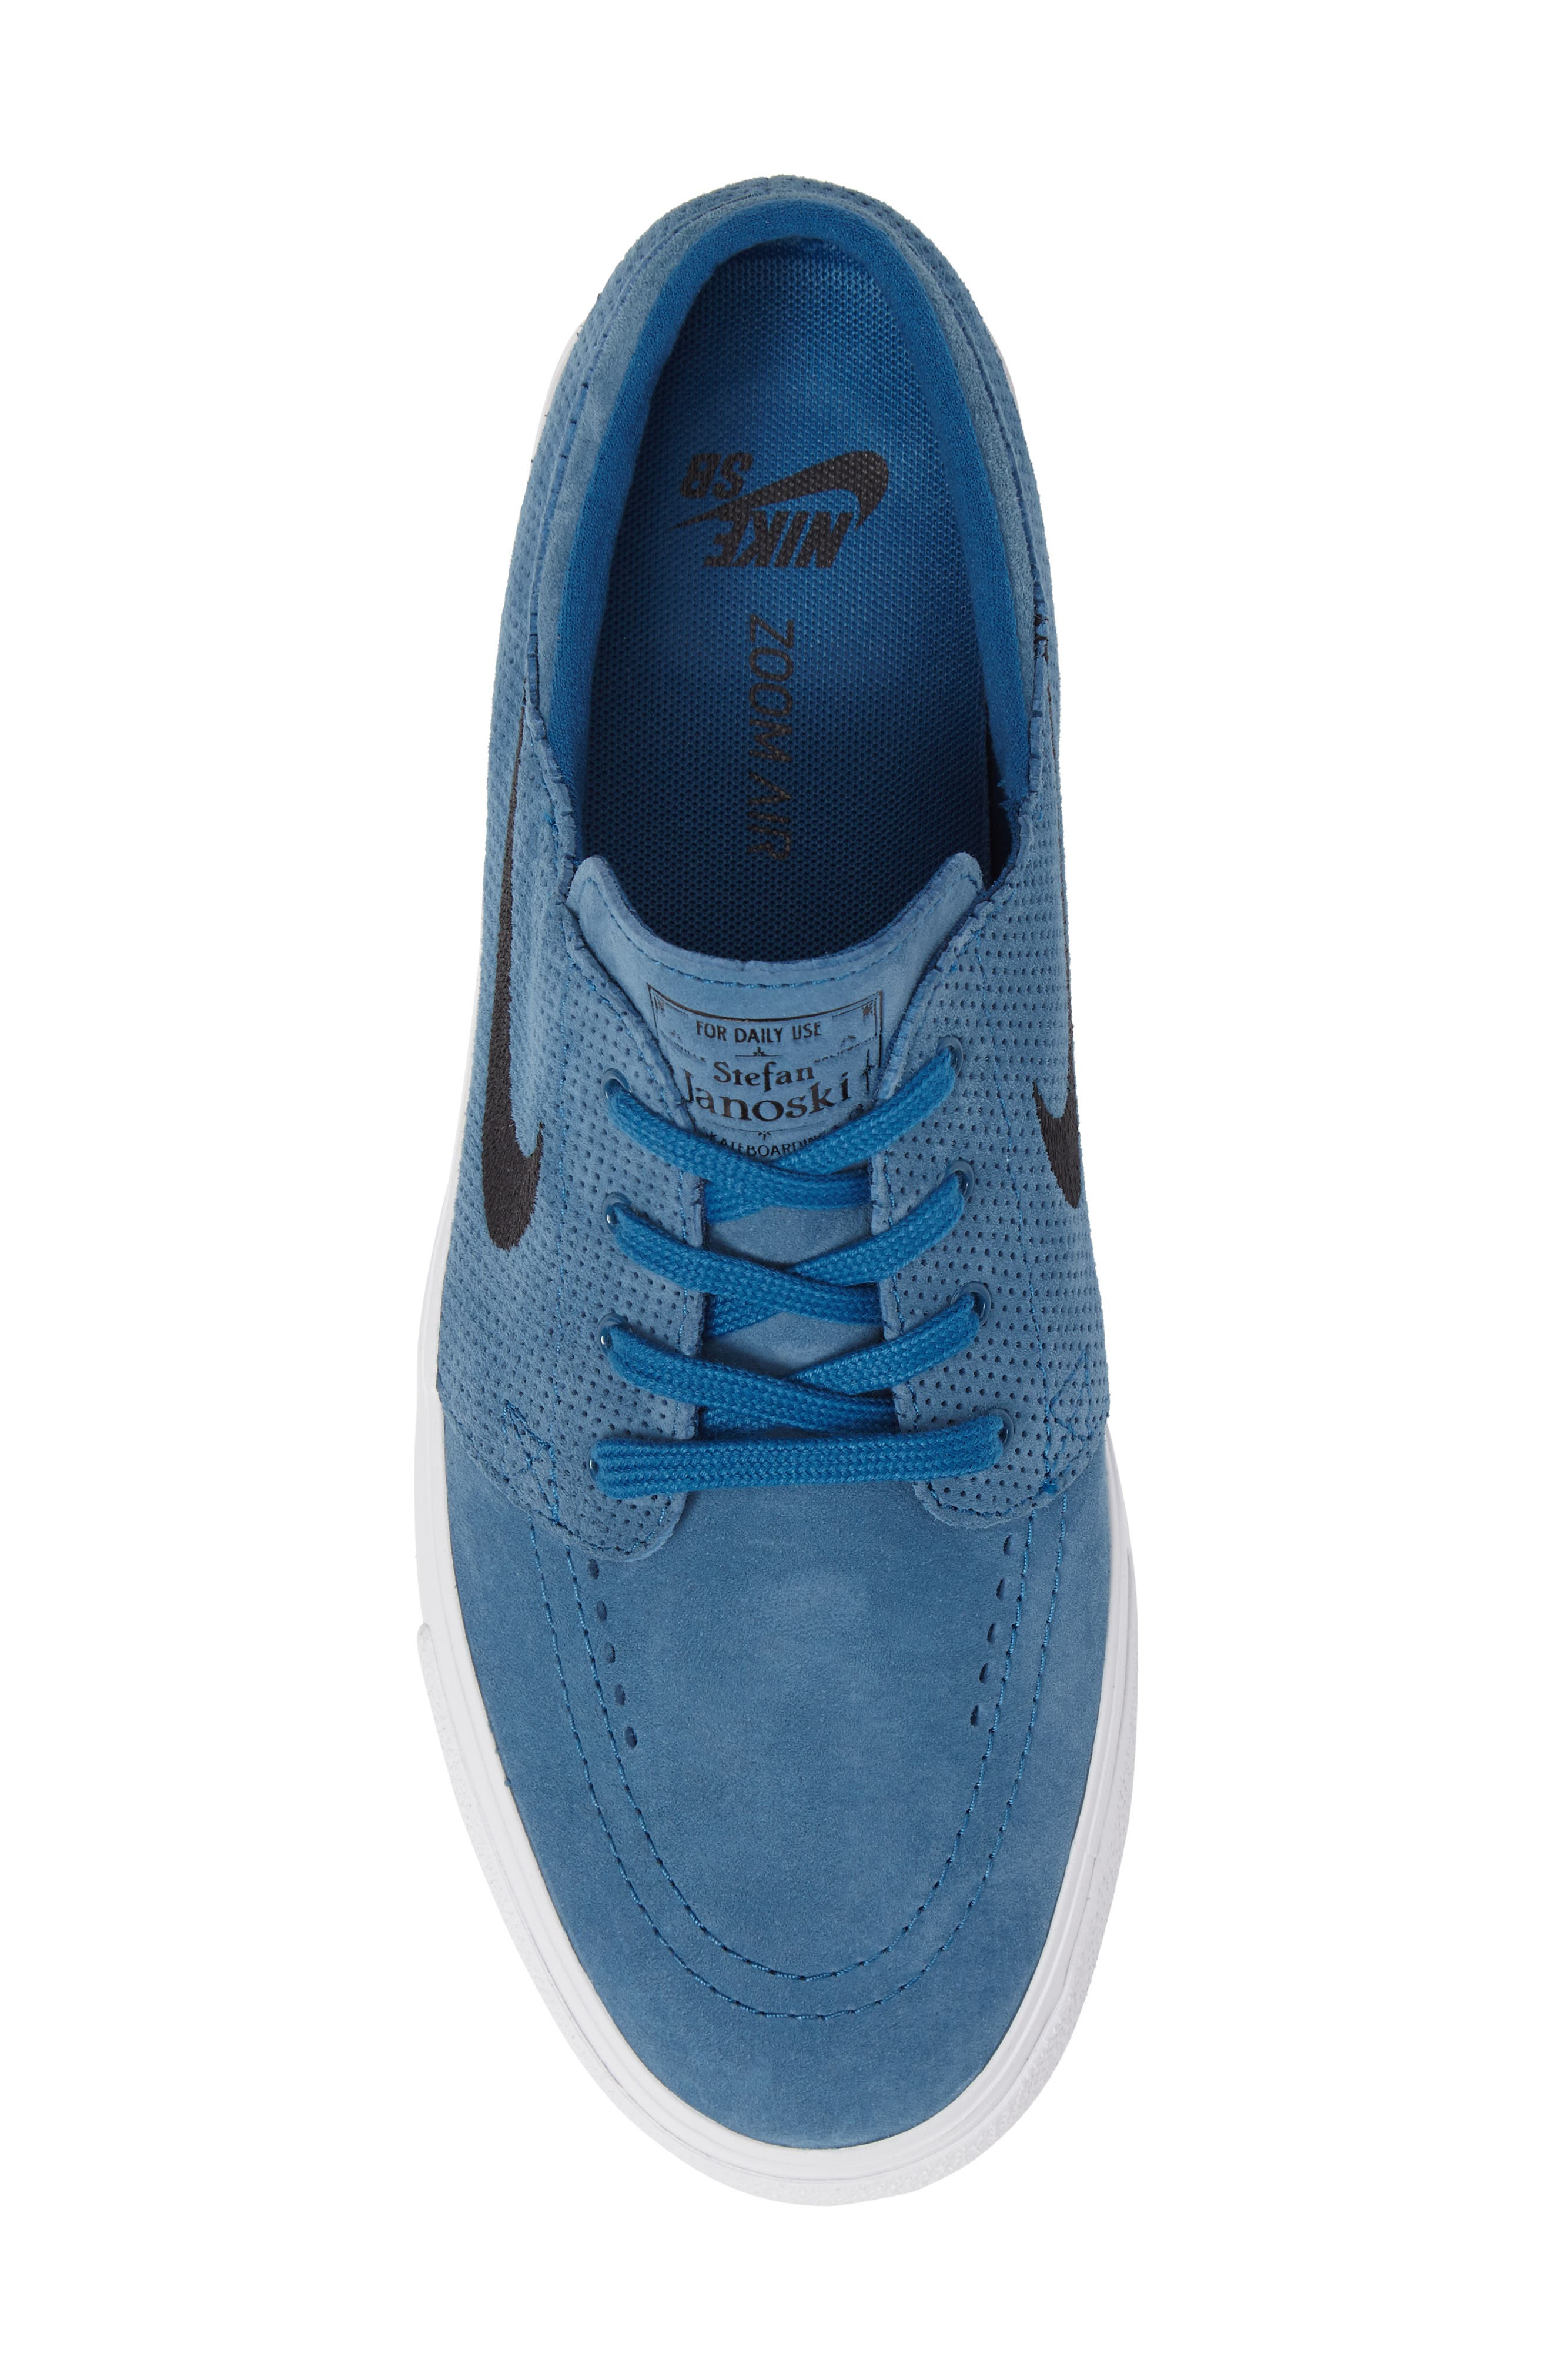 Zoom Stefan Janoski Premium Skate Sneaker,                             Alternate thumbnail 3, color,                             Industrial Blue/ Black